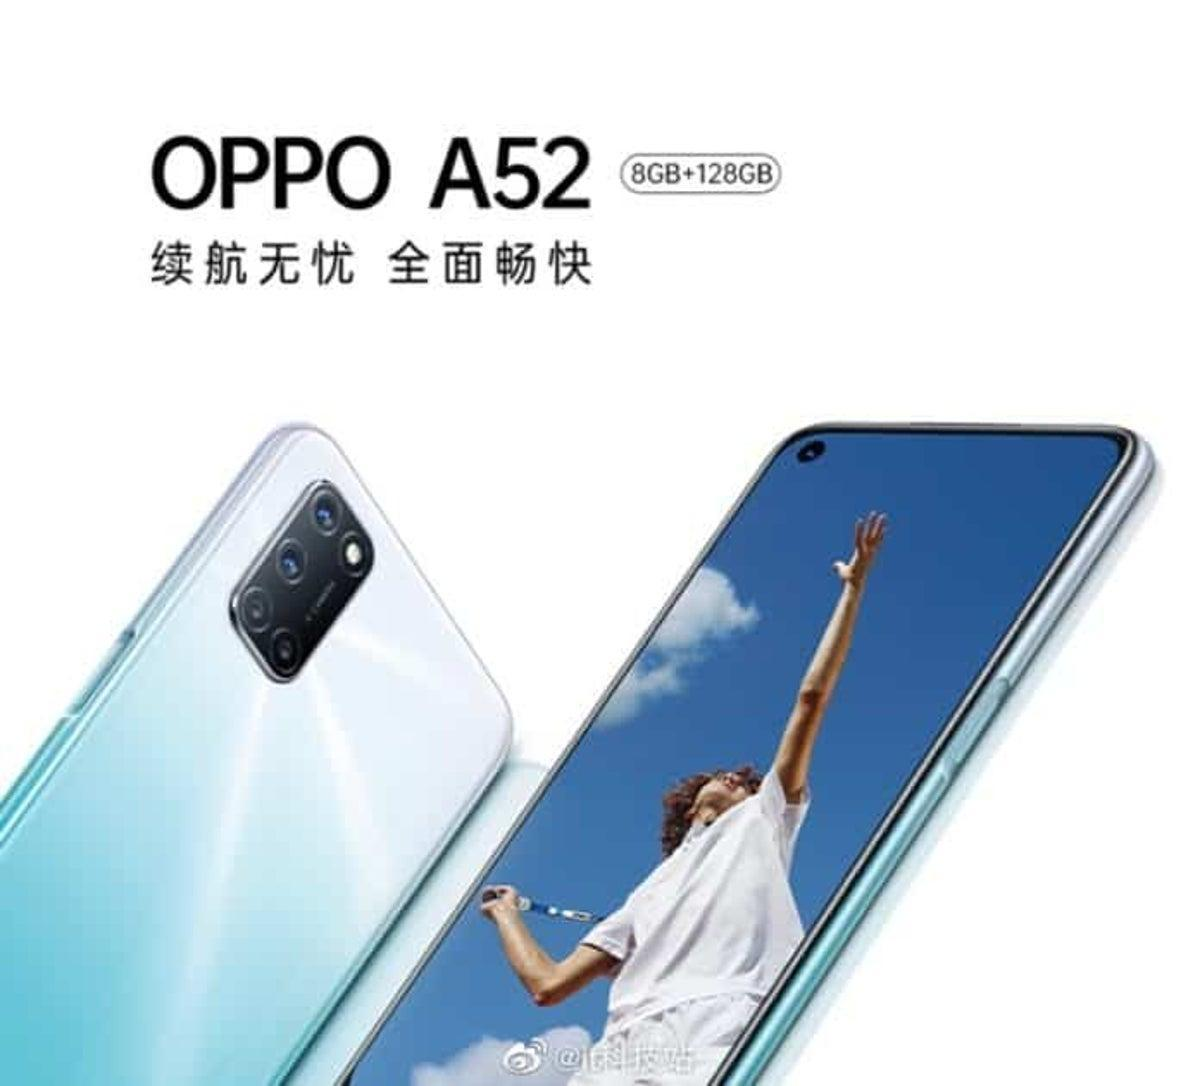 Oppo представила смартфон Oppo A52 (oppo a52 variant 696x630 1)